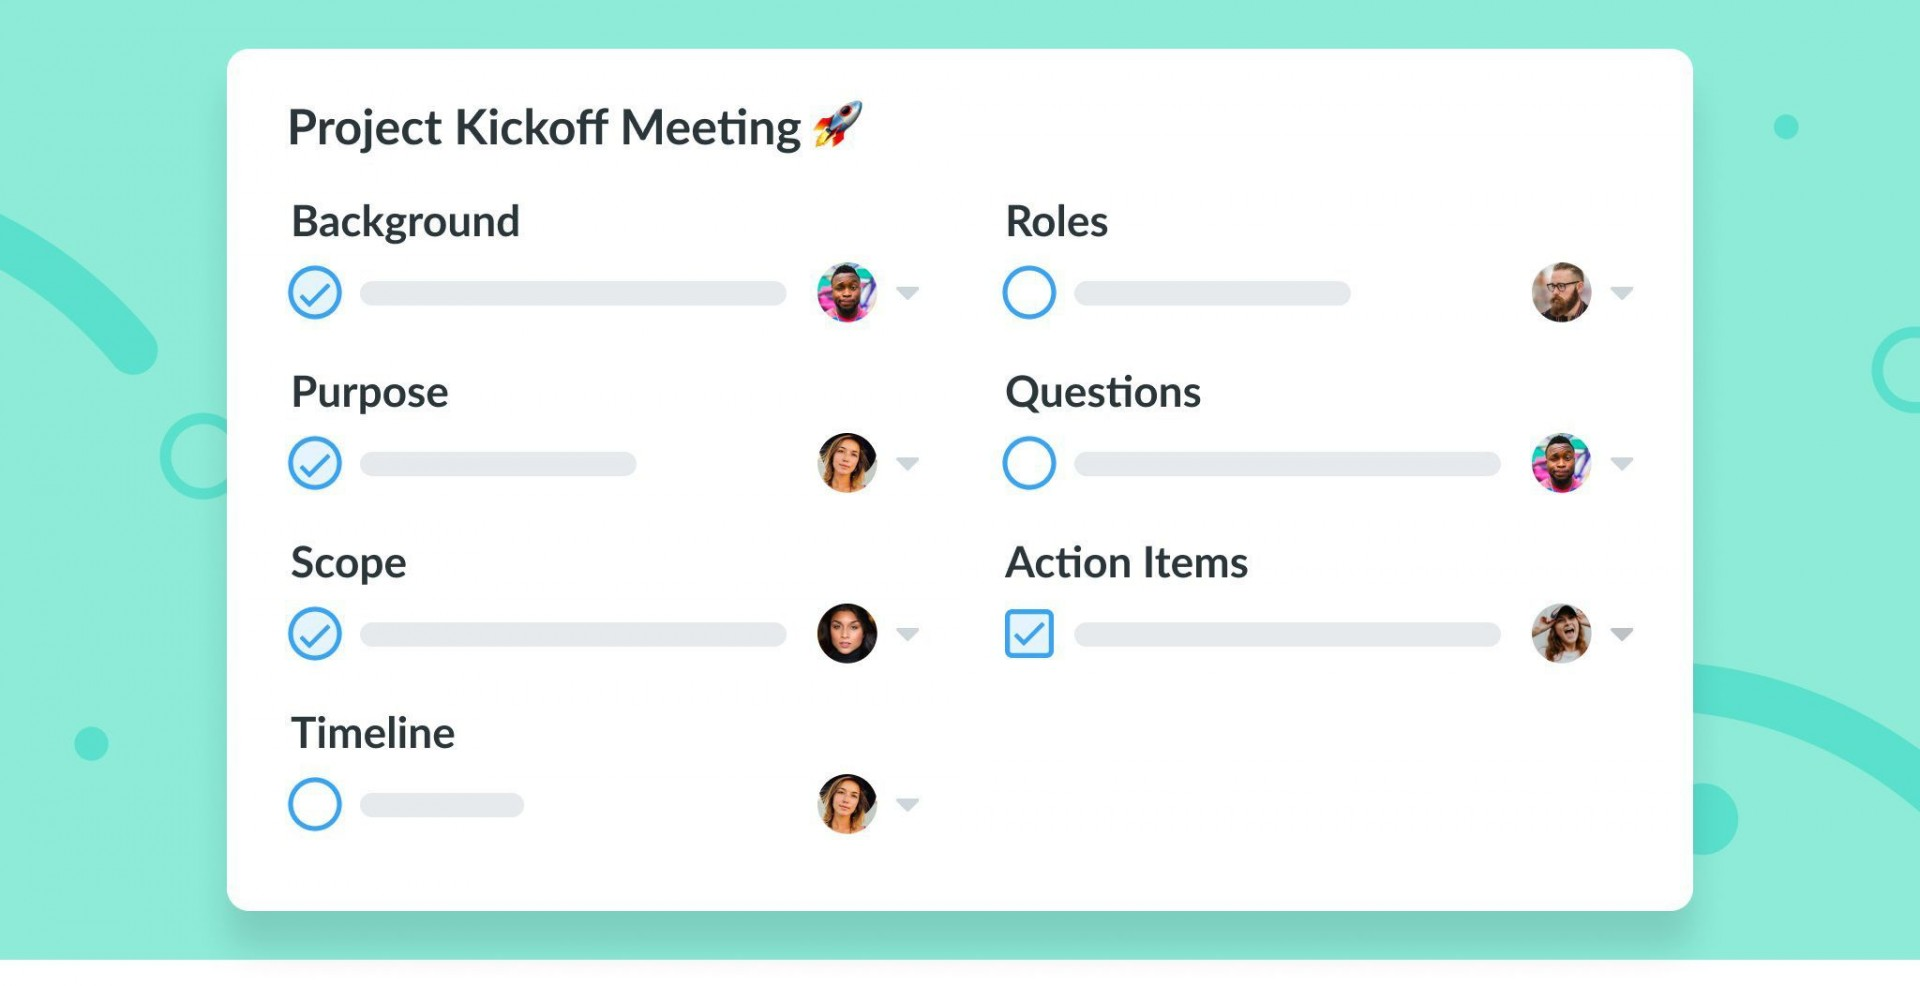 007 Incredible Project Kickoff Meeting Template Xl Photo  Xls Excel1920